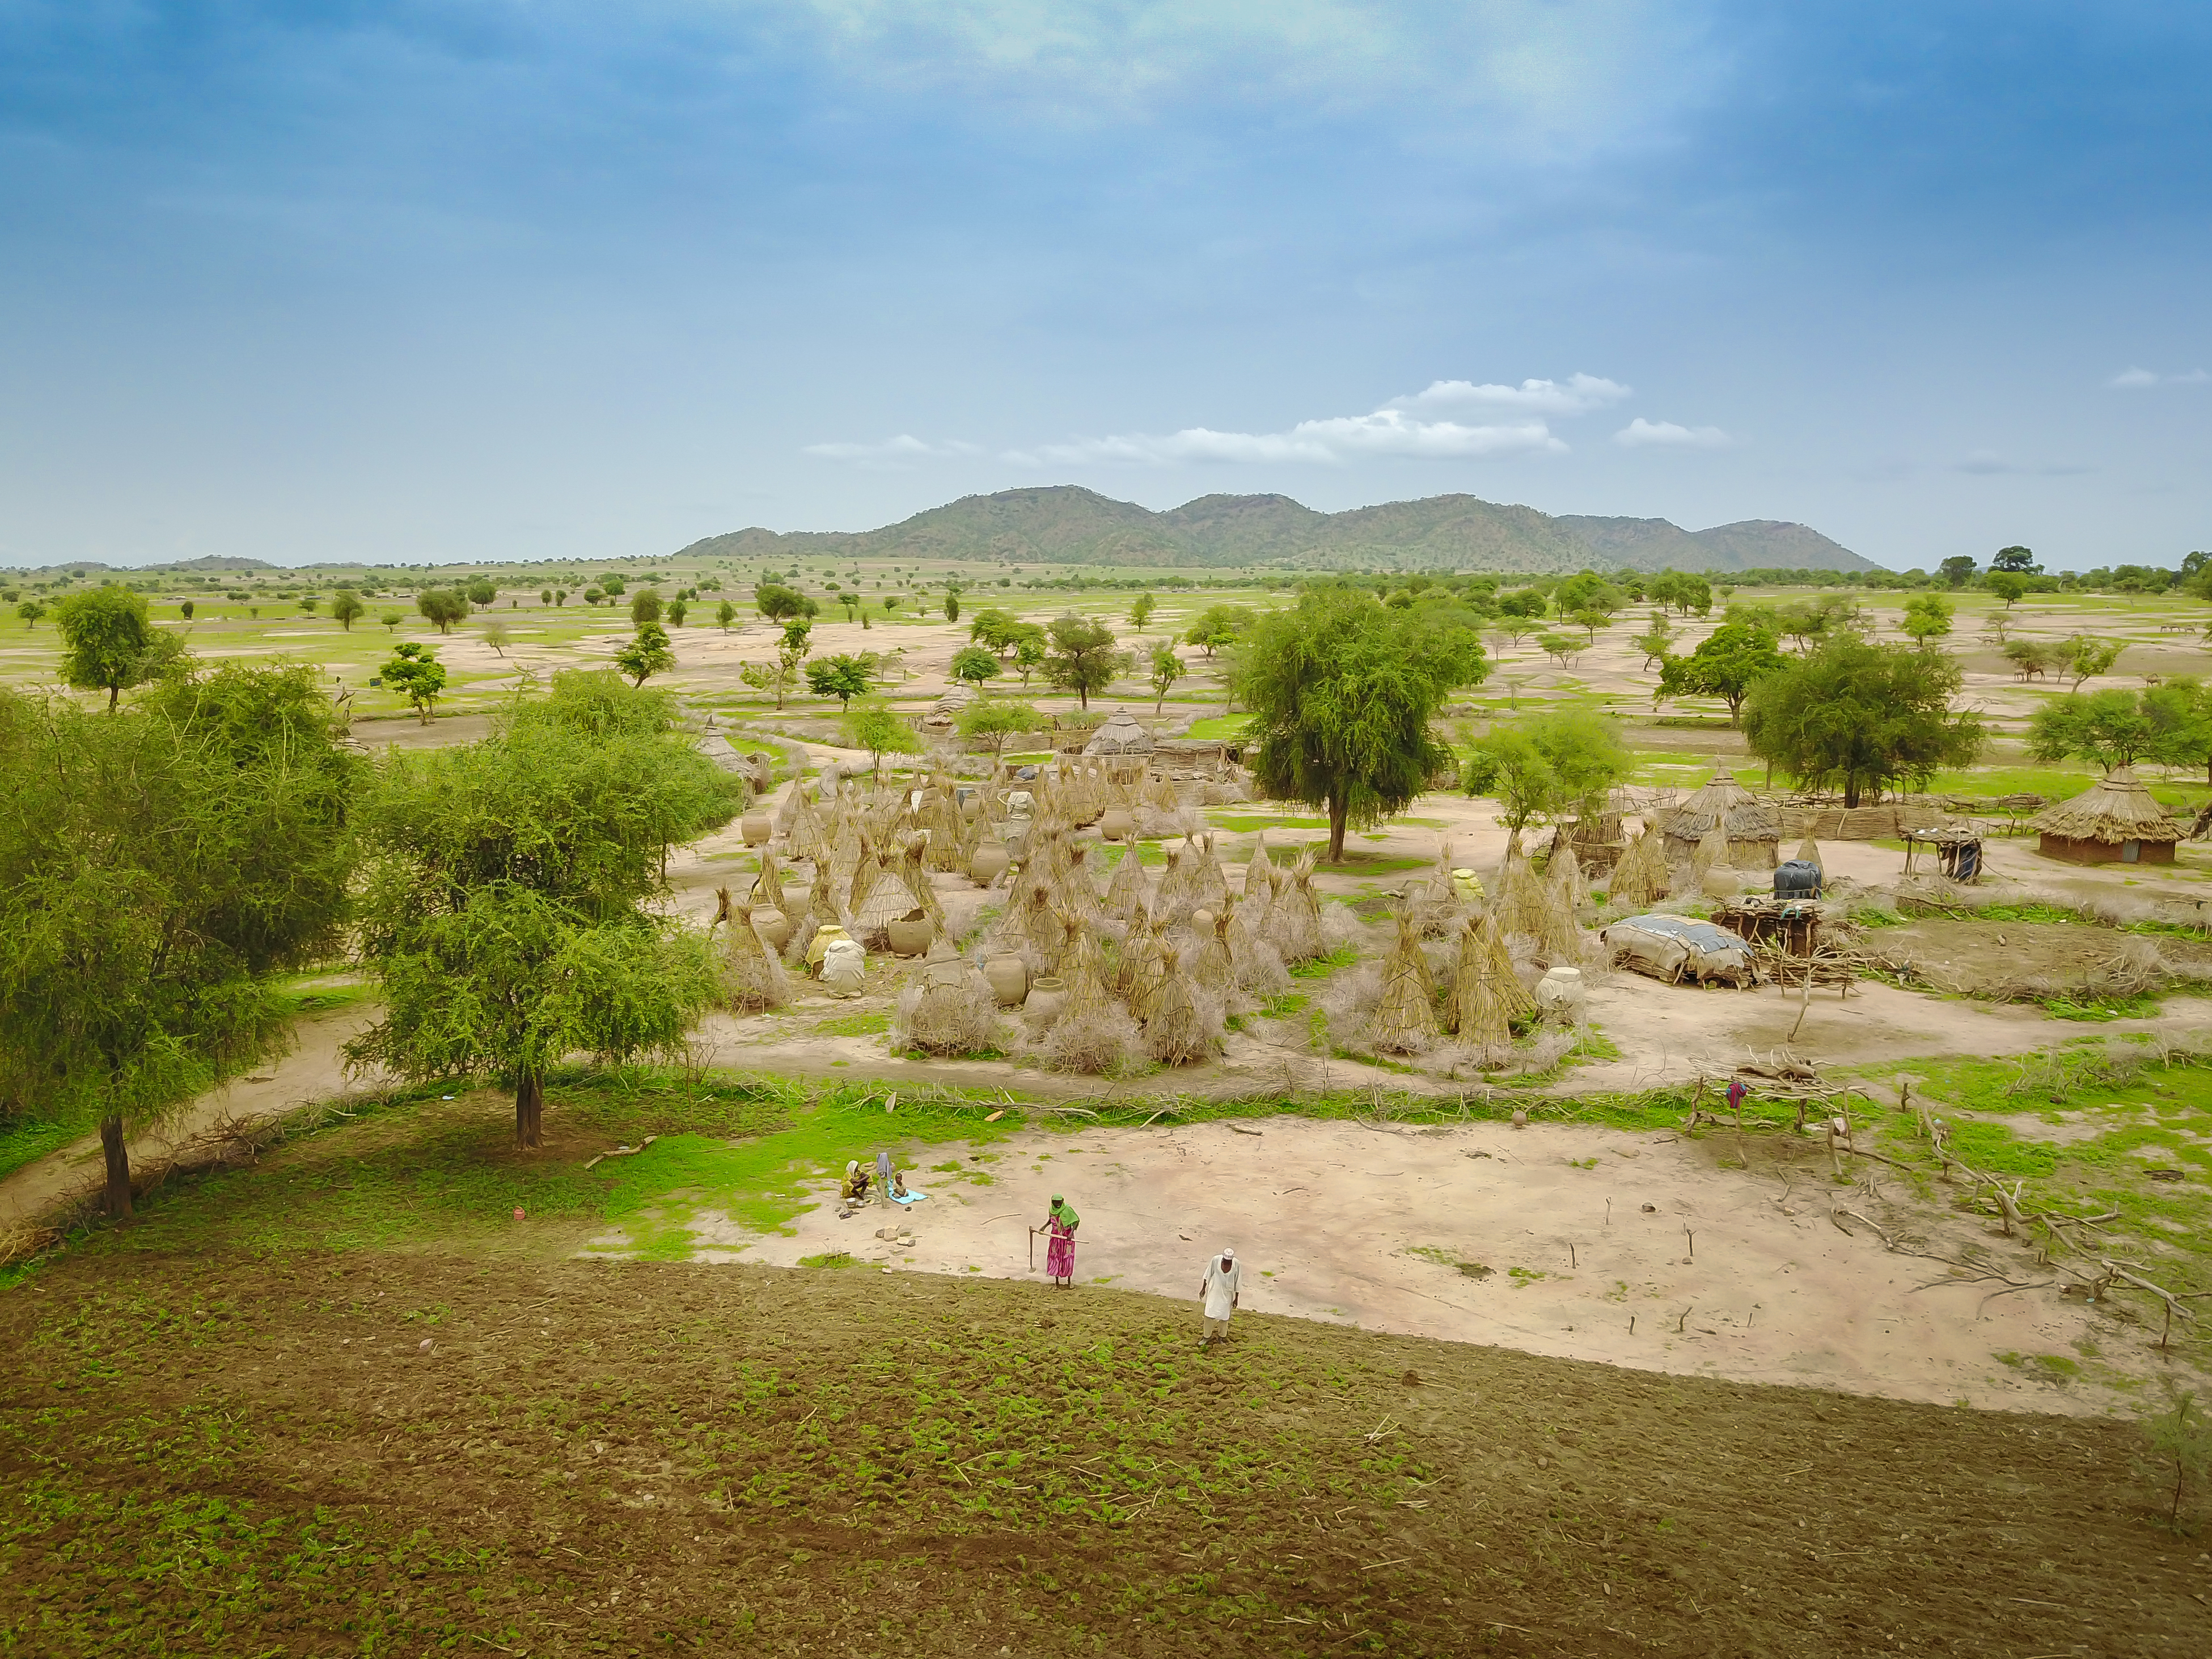 Aerial picture of agricultural landscape and village in Chad